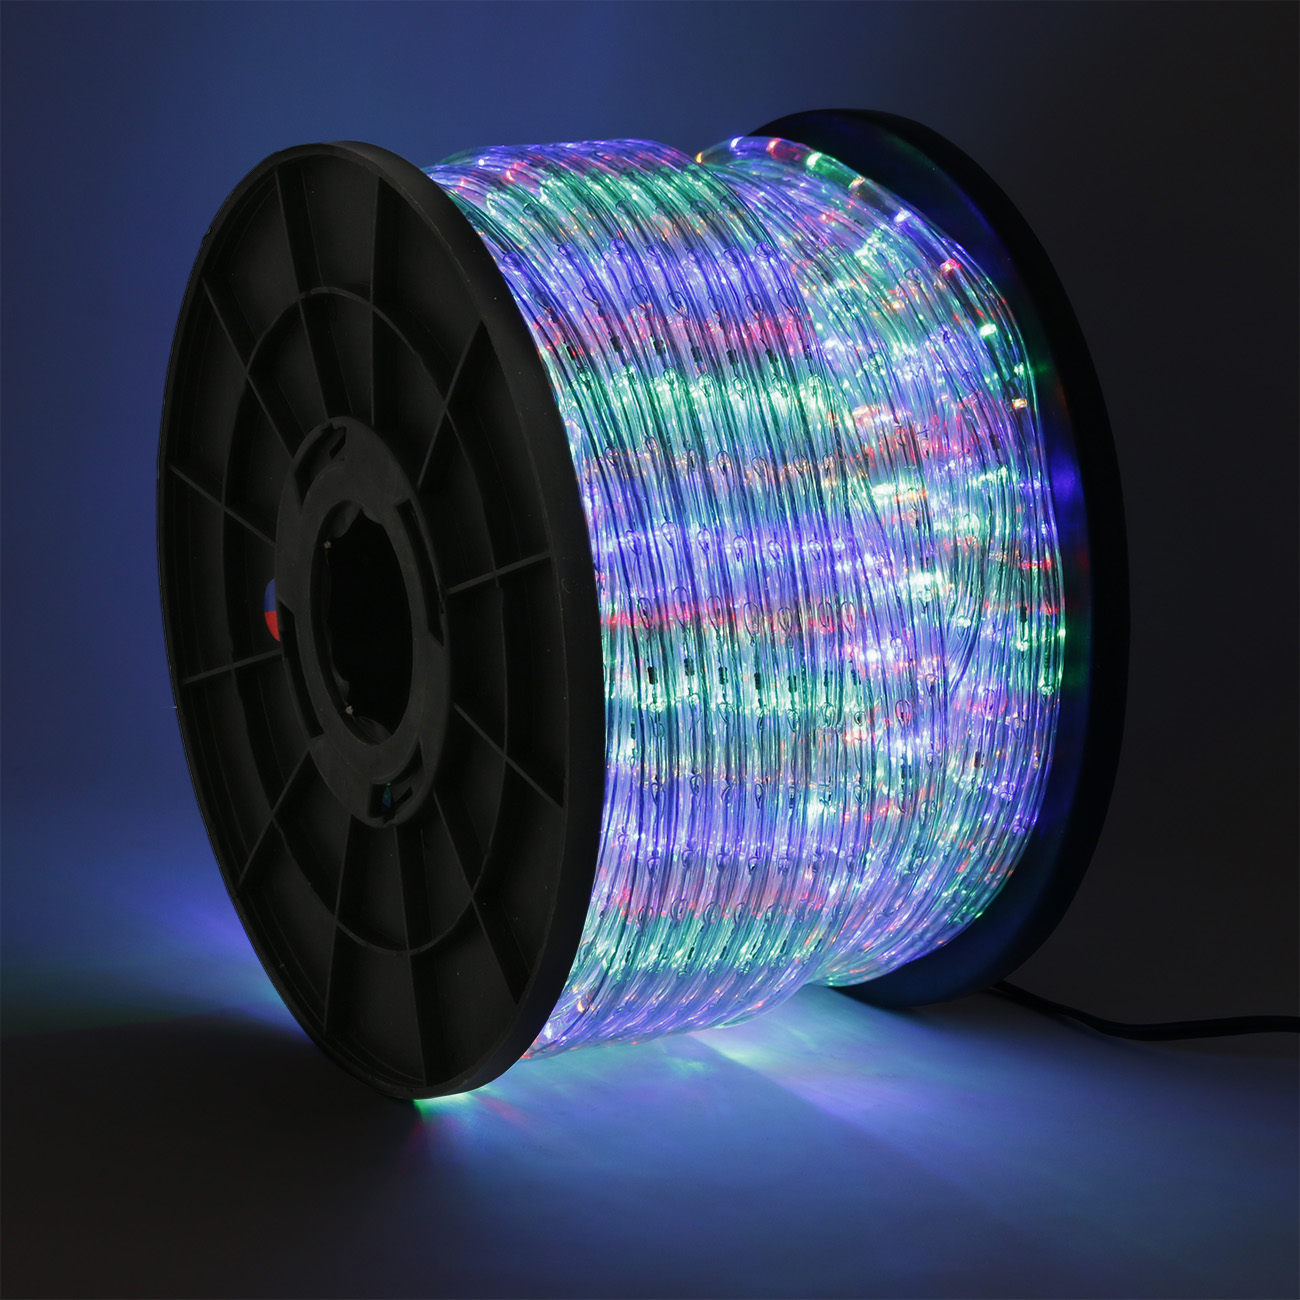 50 100 150 300Ft LED Rope Light 110V Home Party Christmas Decorative In Outdo